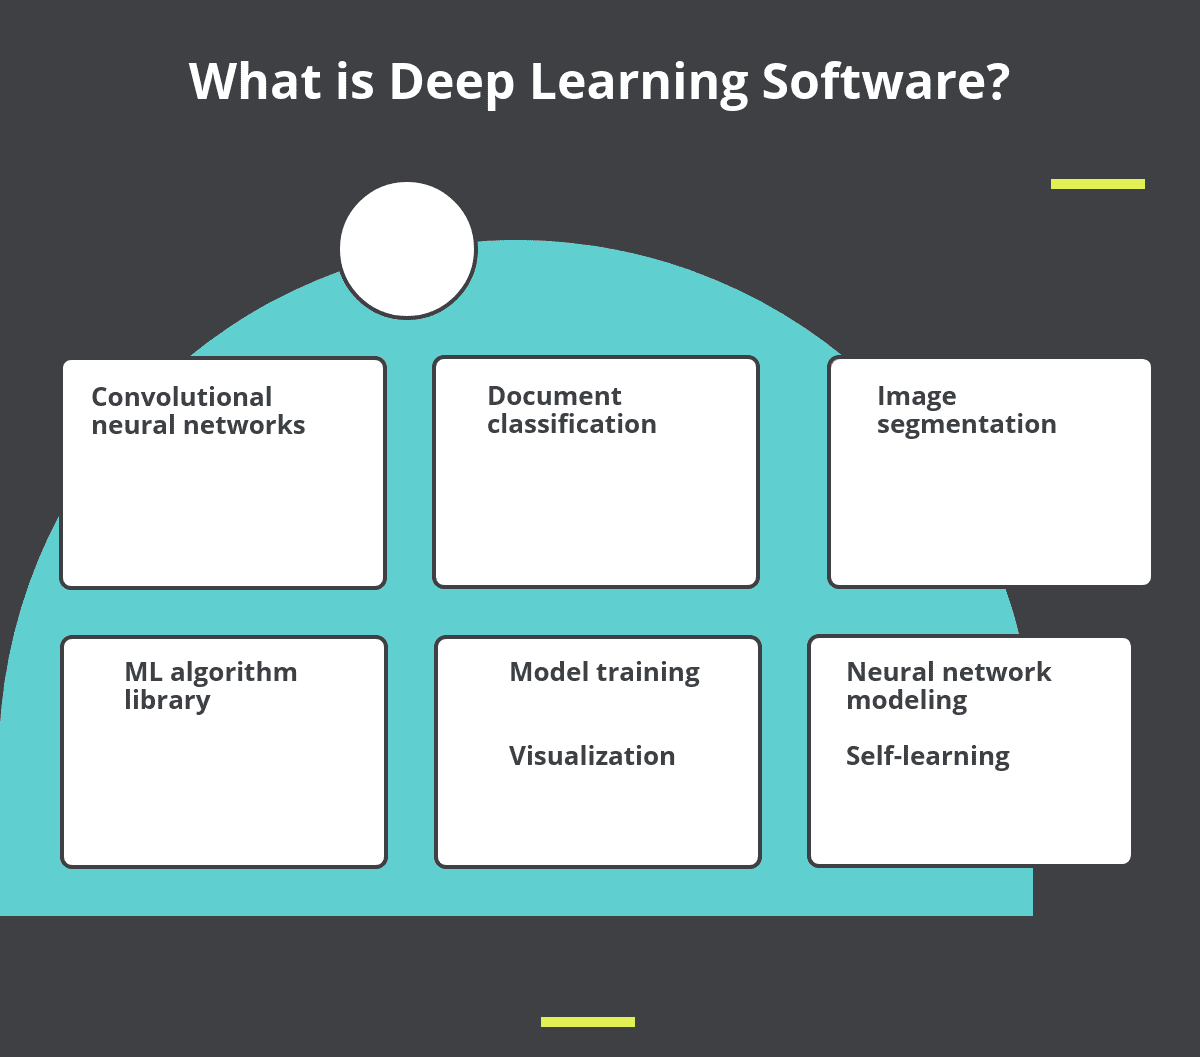 What is Deep Learning Software?